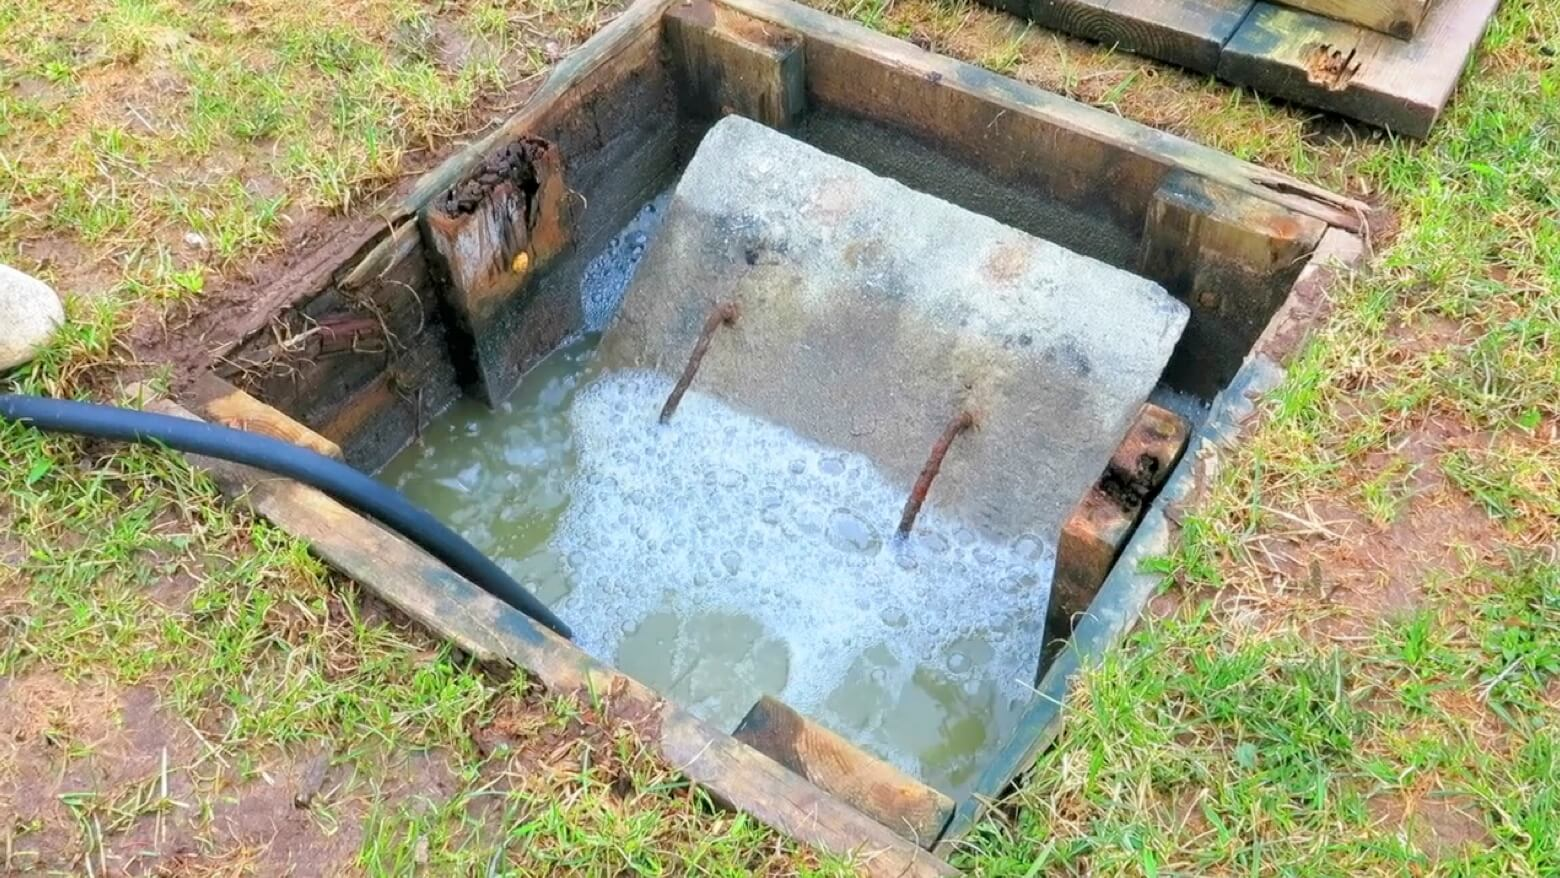 Septic Tank Pumping-Savannah Septic Tank Services, Installation, & Repairs-We offer Septic Service & Repairs, Septic Tank Installations, Septic Tank Cleaning, Commercial, Septic System, Drain Cleaning, Line Snaking, Portable Toilet, Grease Trap Pumping & Cleaning, Septic Tank Pumping, Sewage Pump, Sewer Line Repair, Septic Tank Replacement, Septic Maintenance, Sewer Line Replacement, Porta Potty Rentals